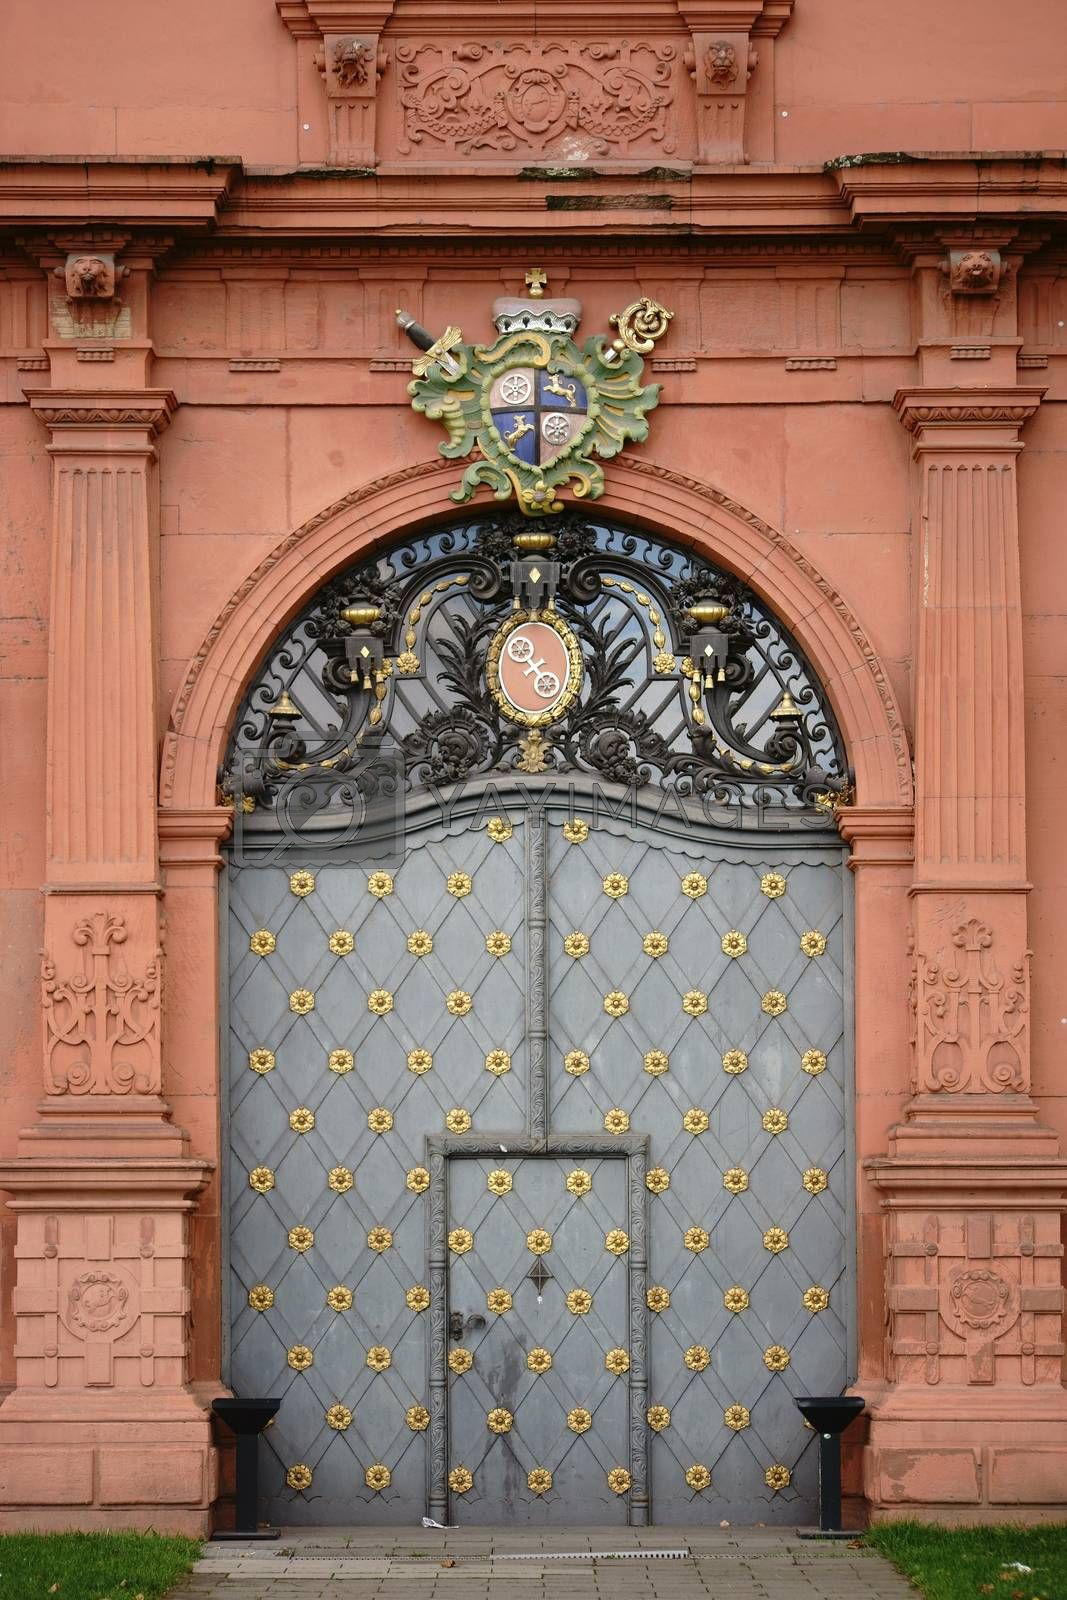 Mainz, Germany - September 19, 2015: The entrance door of the Electoral Palace Mainz studded with gold, iron ornaments and a coat of arms on September 19, 2015 in Mainz.